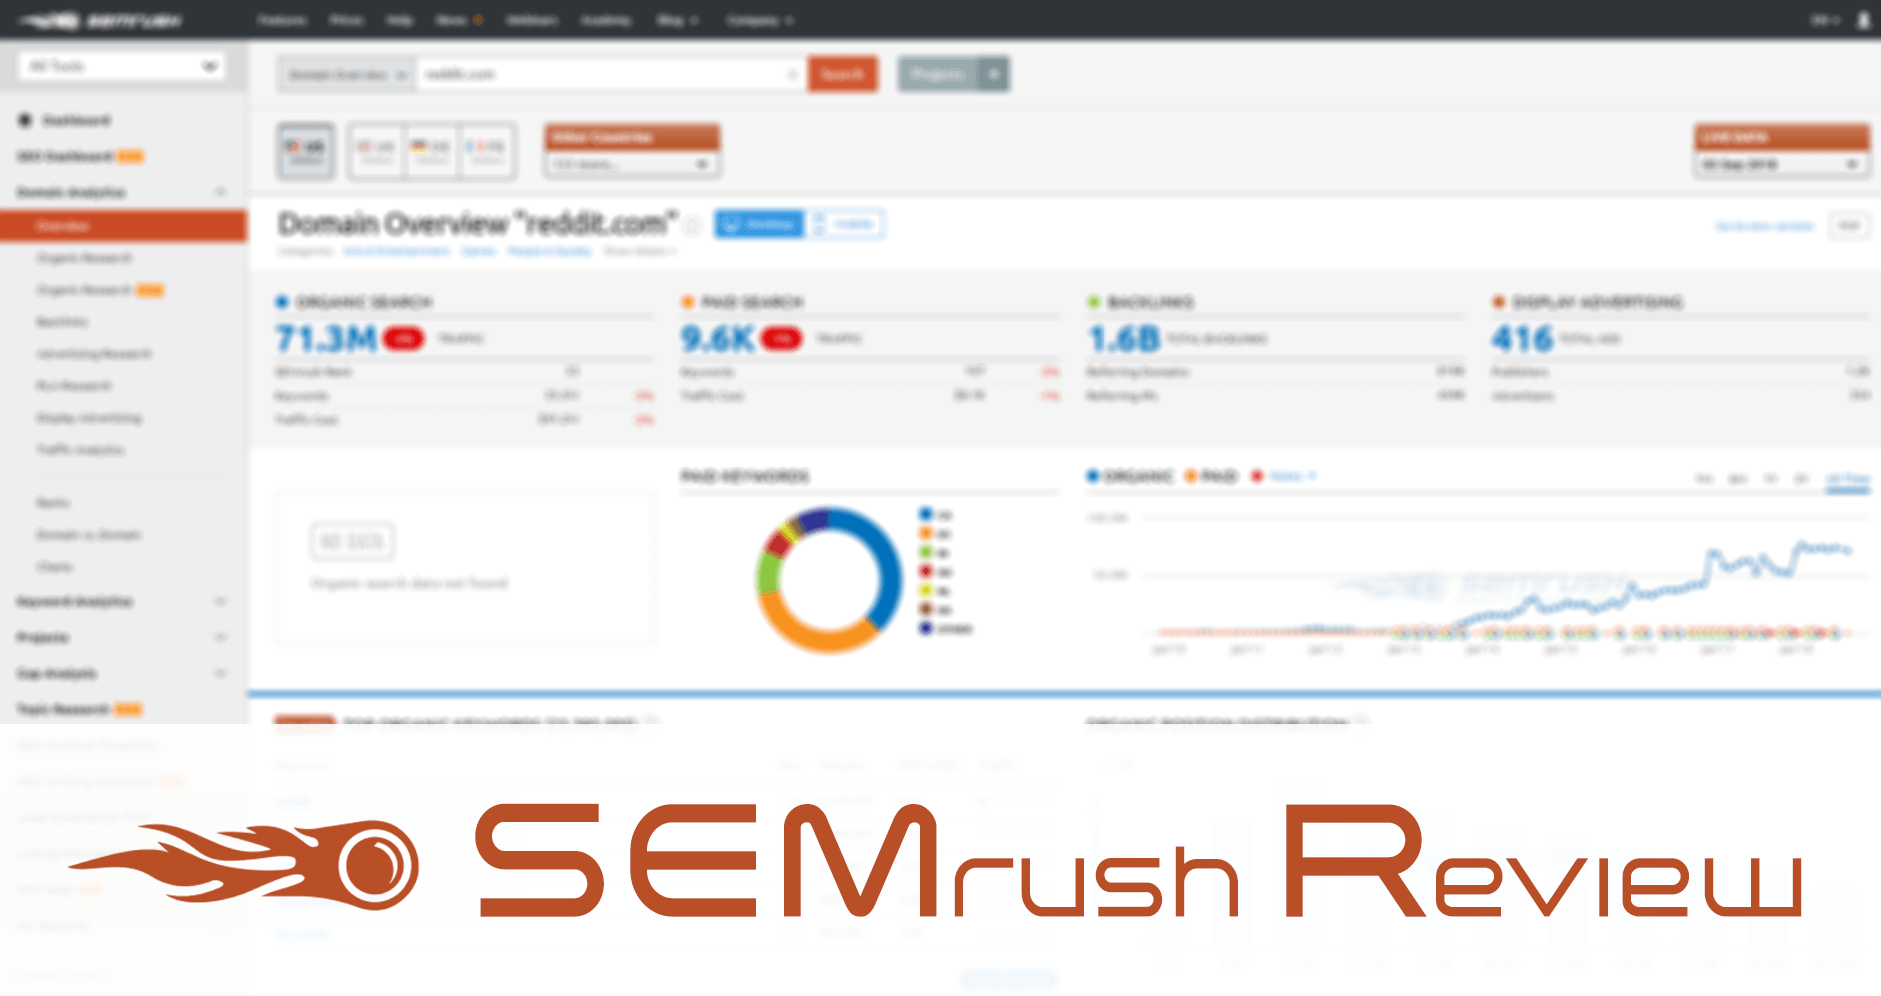 20 Percent Off Voucher Code Semrush